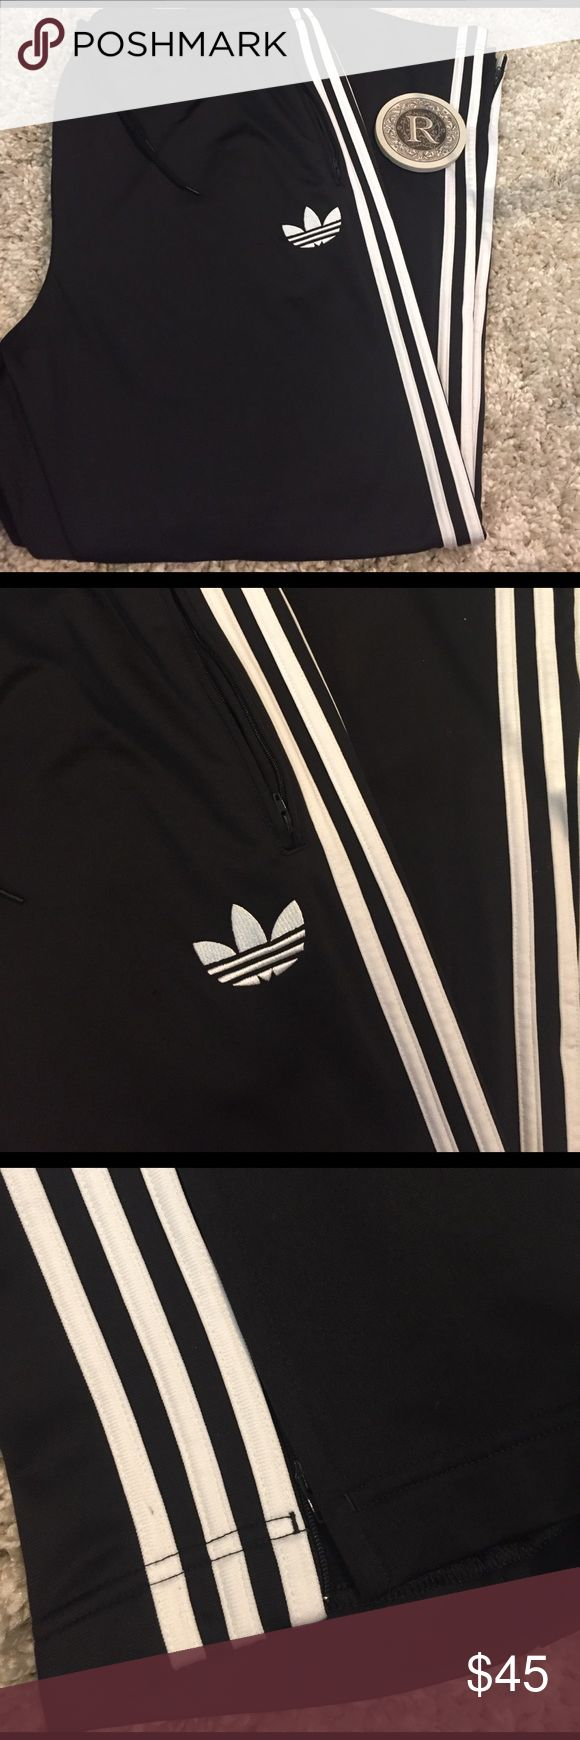 Adidas Sweatpants Joggers Black and white jogger pants Adidas Pants Sweatpants & Joggers